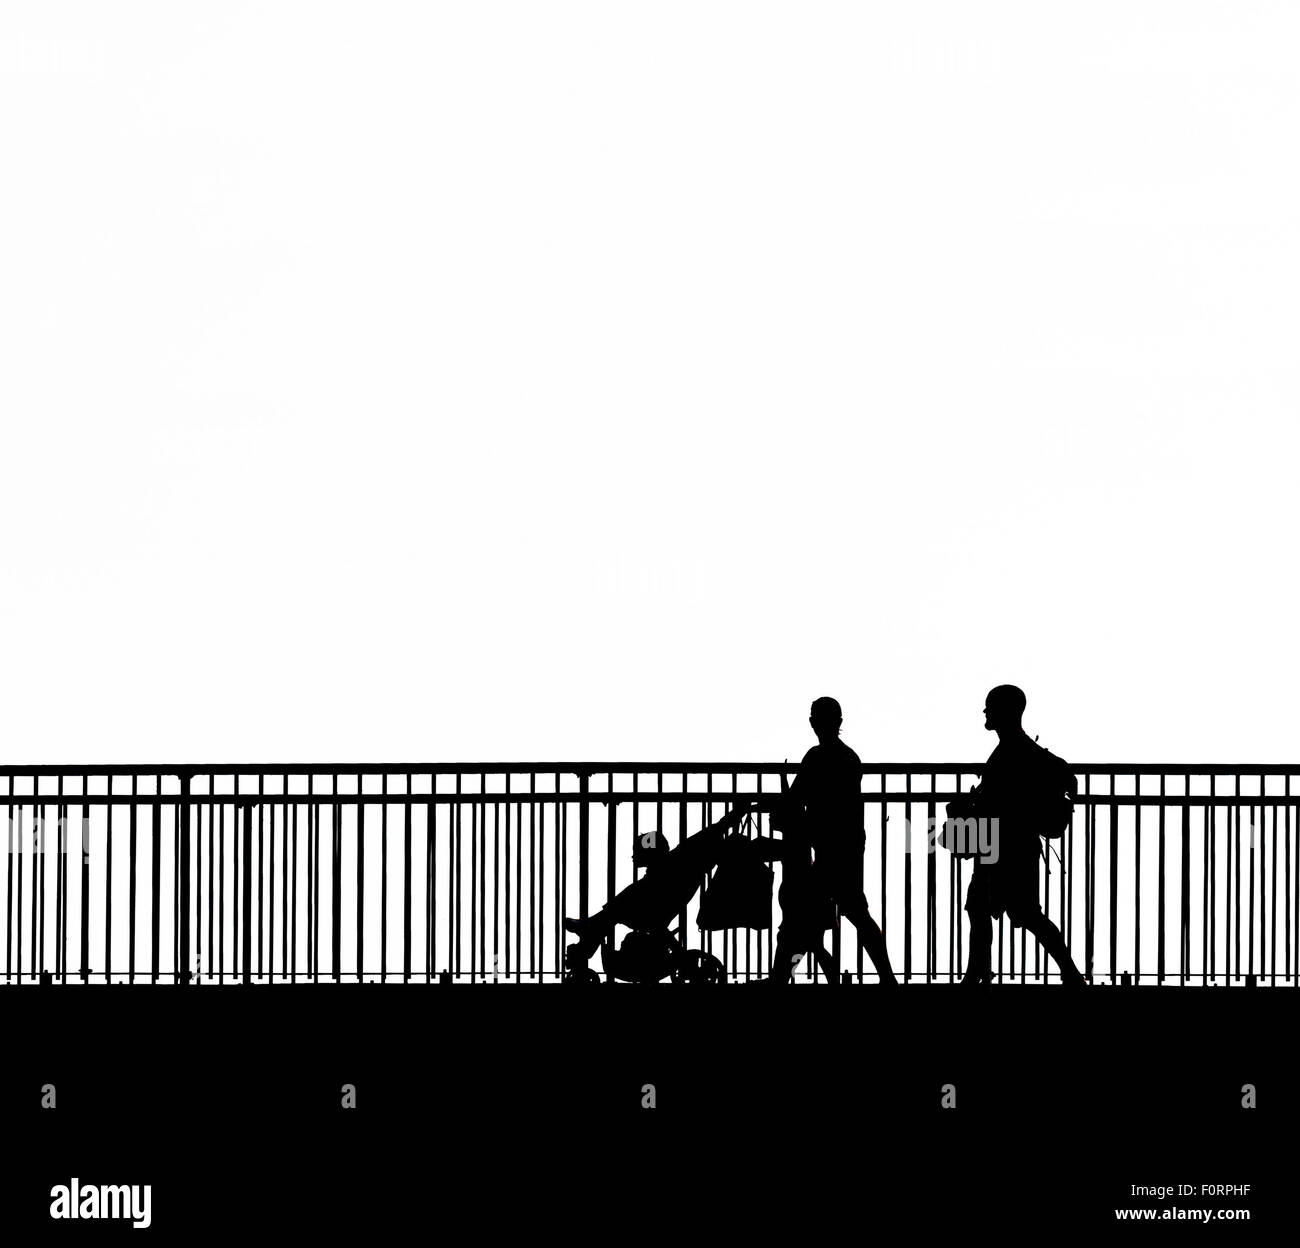 The silhouette of people walking across the Louisa Gap Bridge in Broadstairs, Kent. - Stock Image